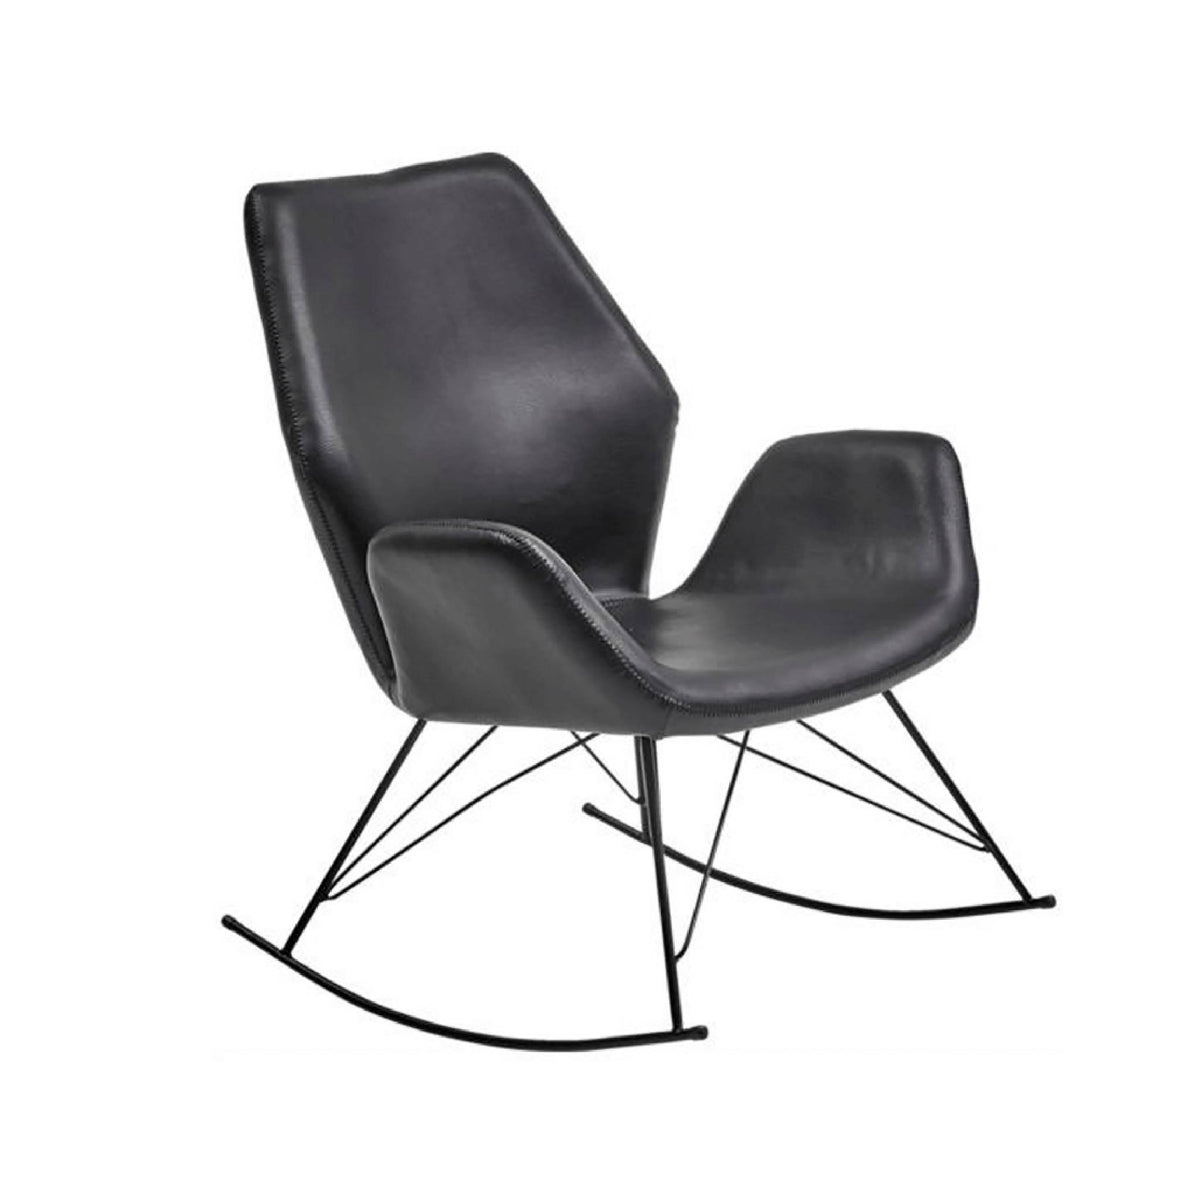 Bryce Accent Rocking Chair - Black Faux Leather